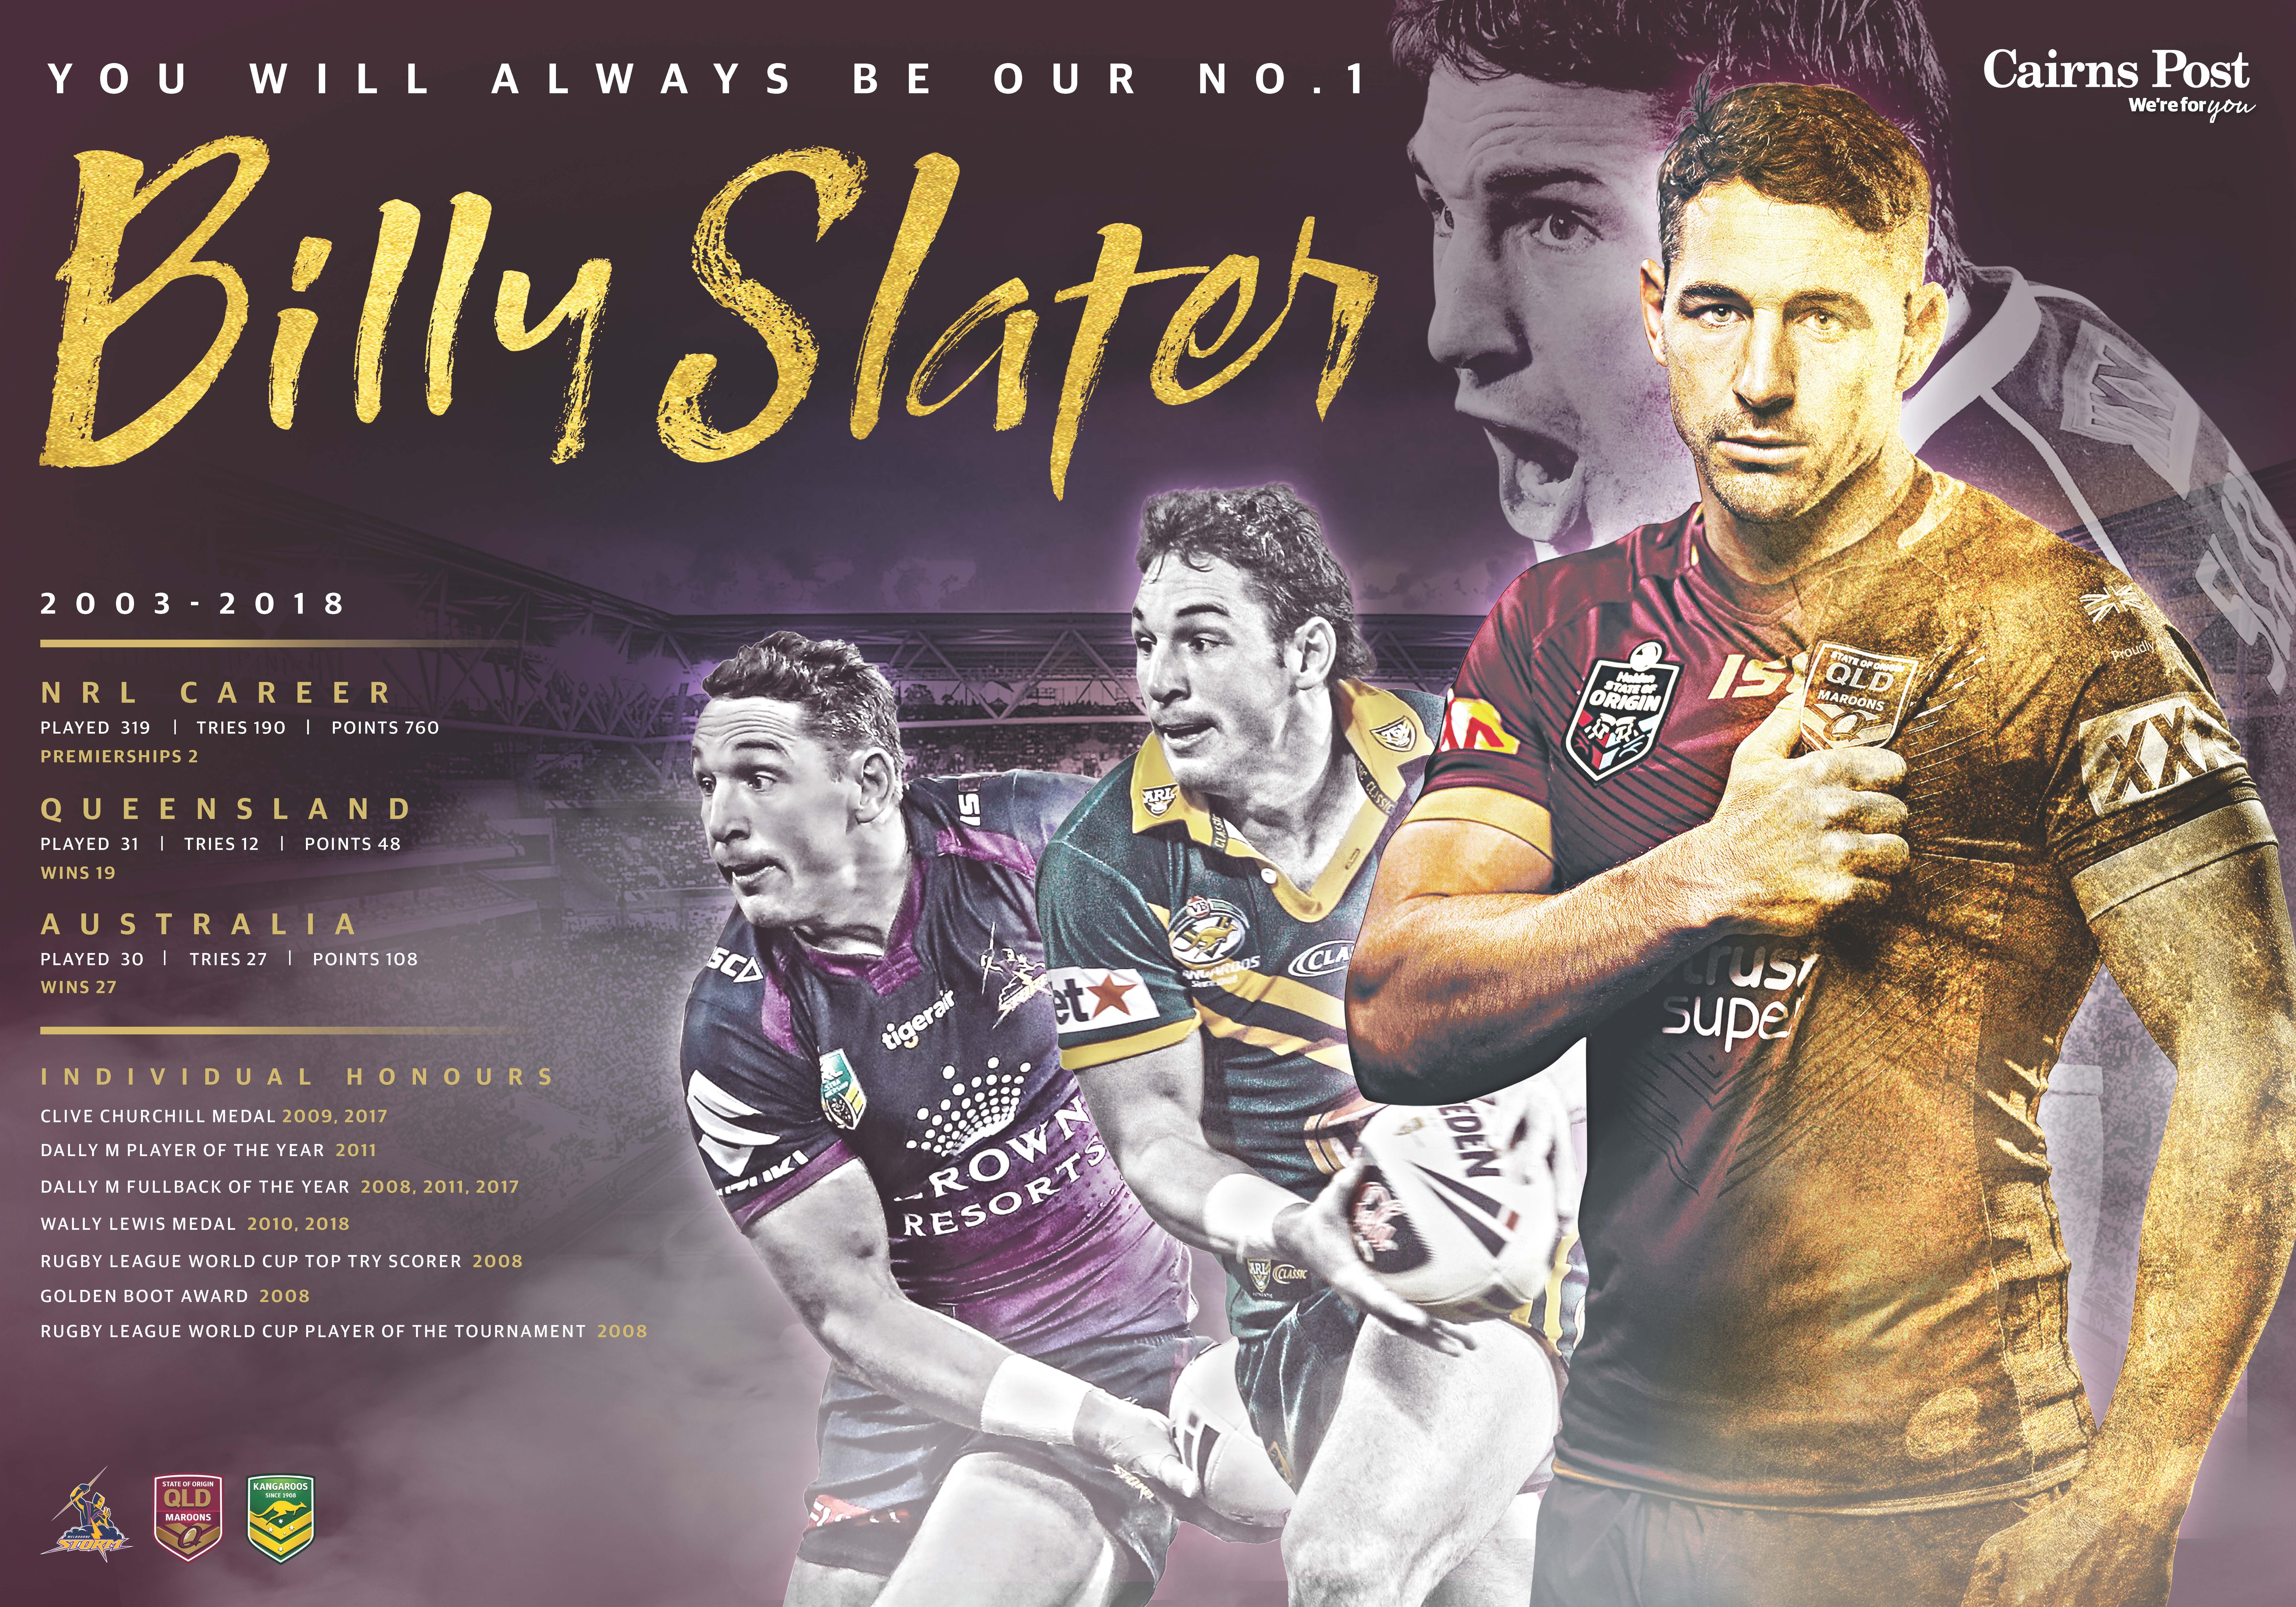 Billy Slater 2018 Nrl Poster Tribute To Billy Slater Congratulations On The Brilliant Career And Thank You For Made The Game Chan Nrl Rugby League Team Photos